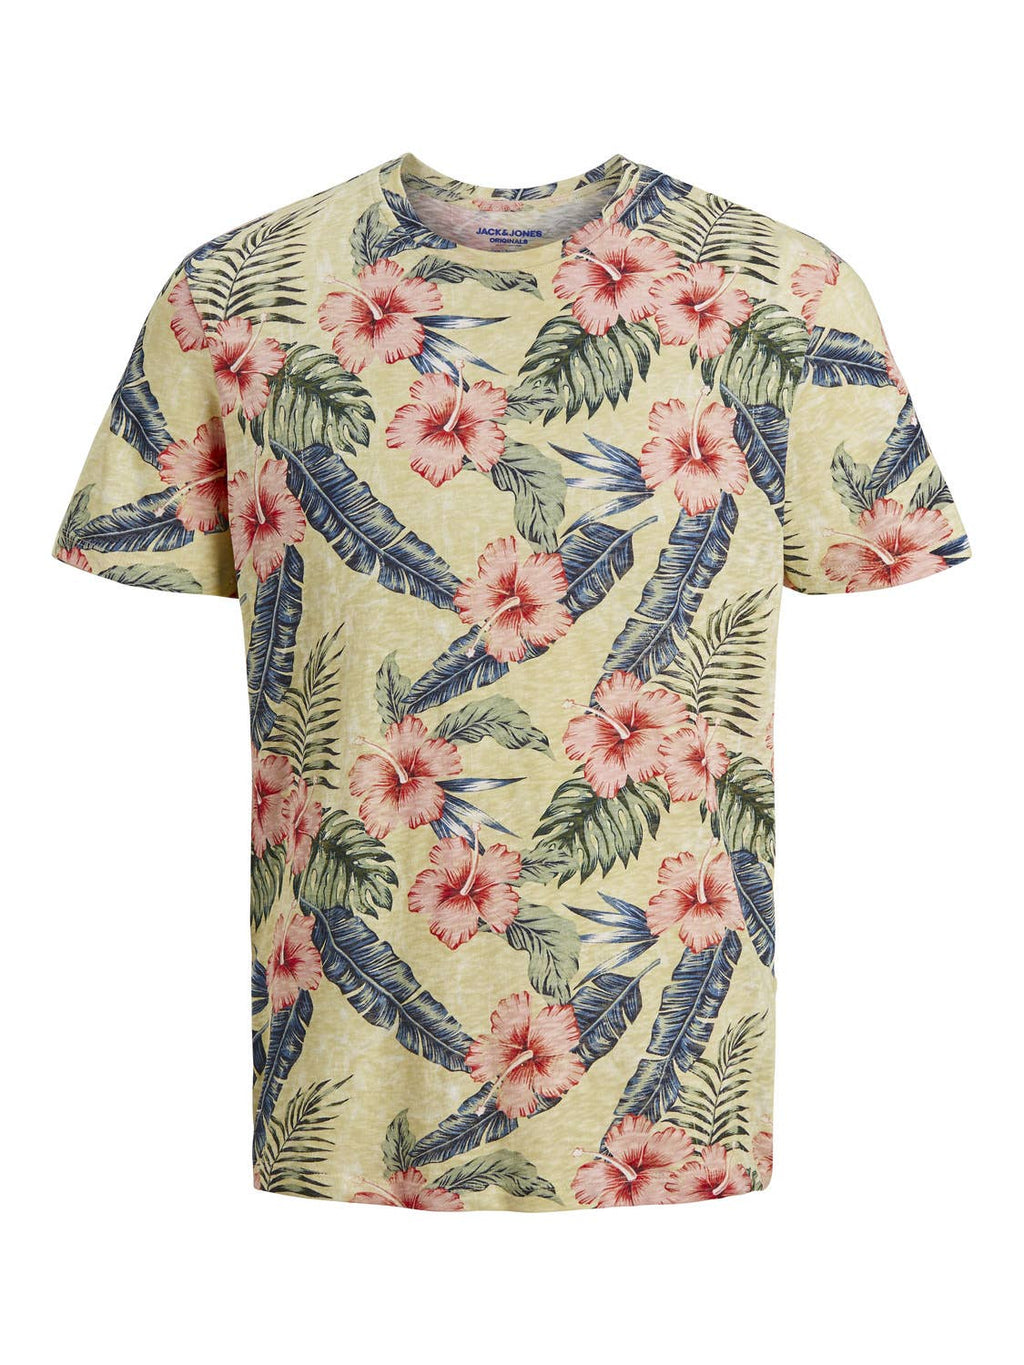 Jack & Jones - Jack & Jones  Men's Organic All Over Printed Crew Neck Tee